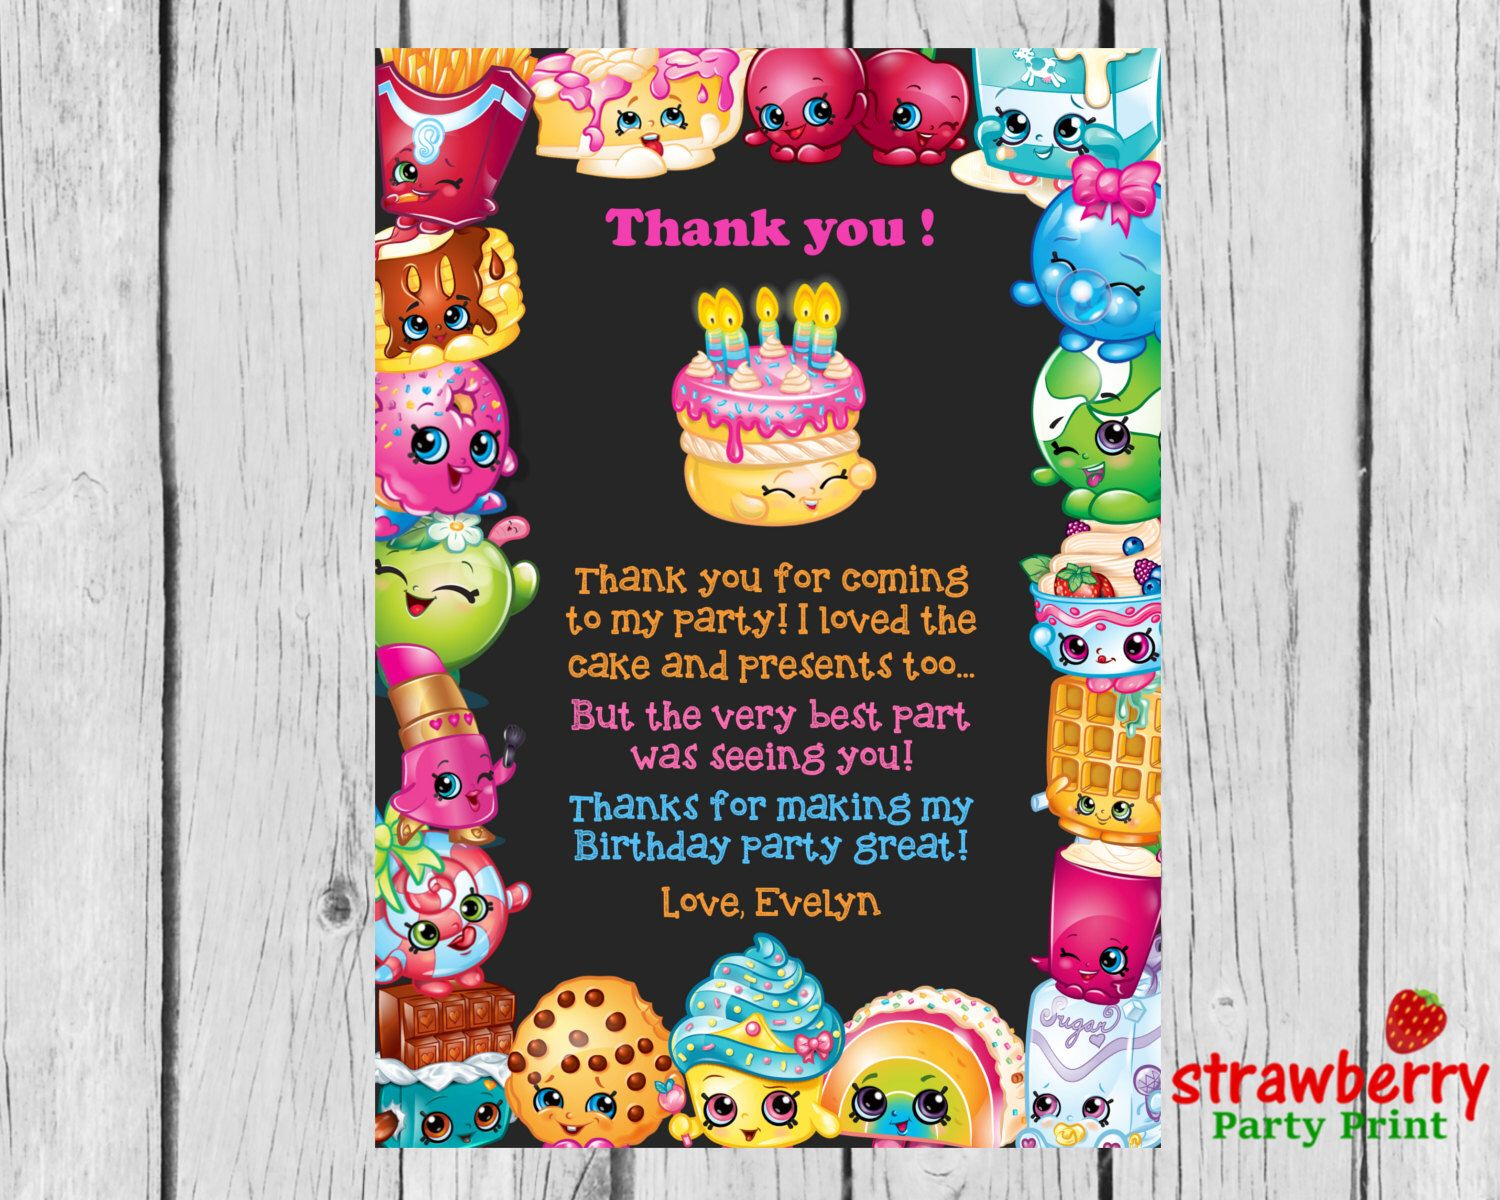 44 best shopkins party images on pinterest birthday party ideas shopkins thank you card to match birthday invitation shopkins party invite thank you note monicamarmolfo Images